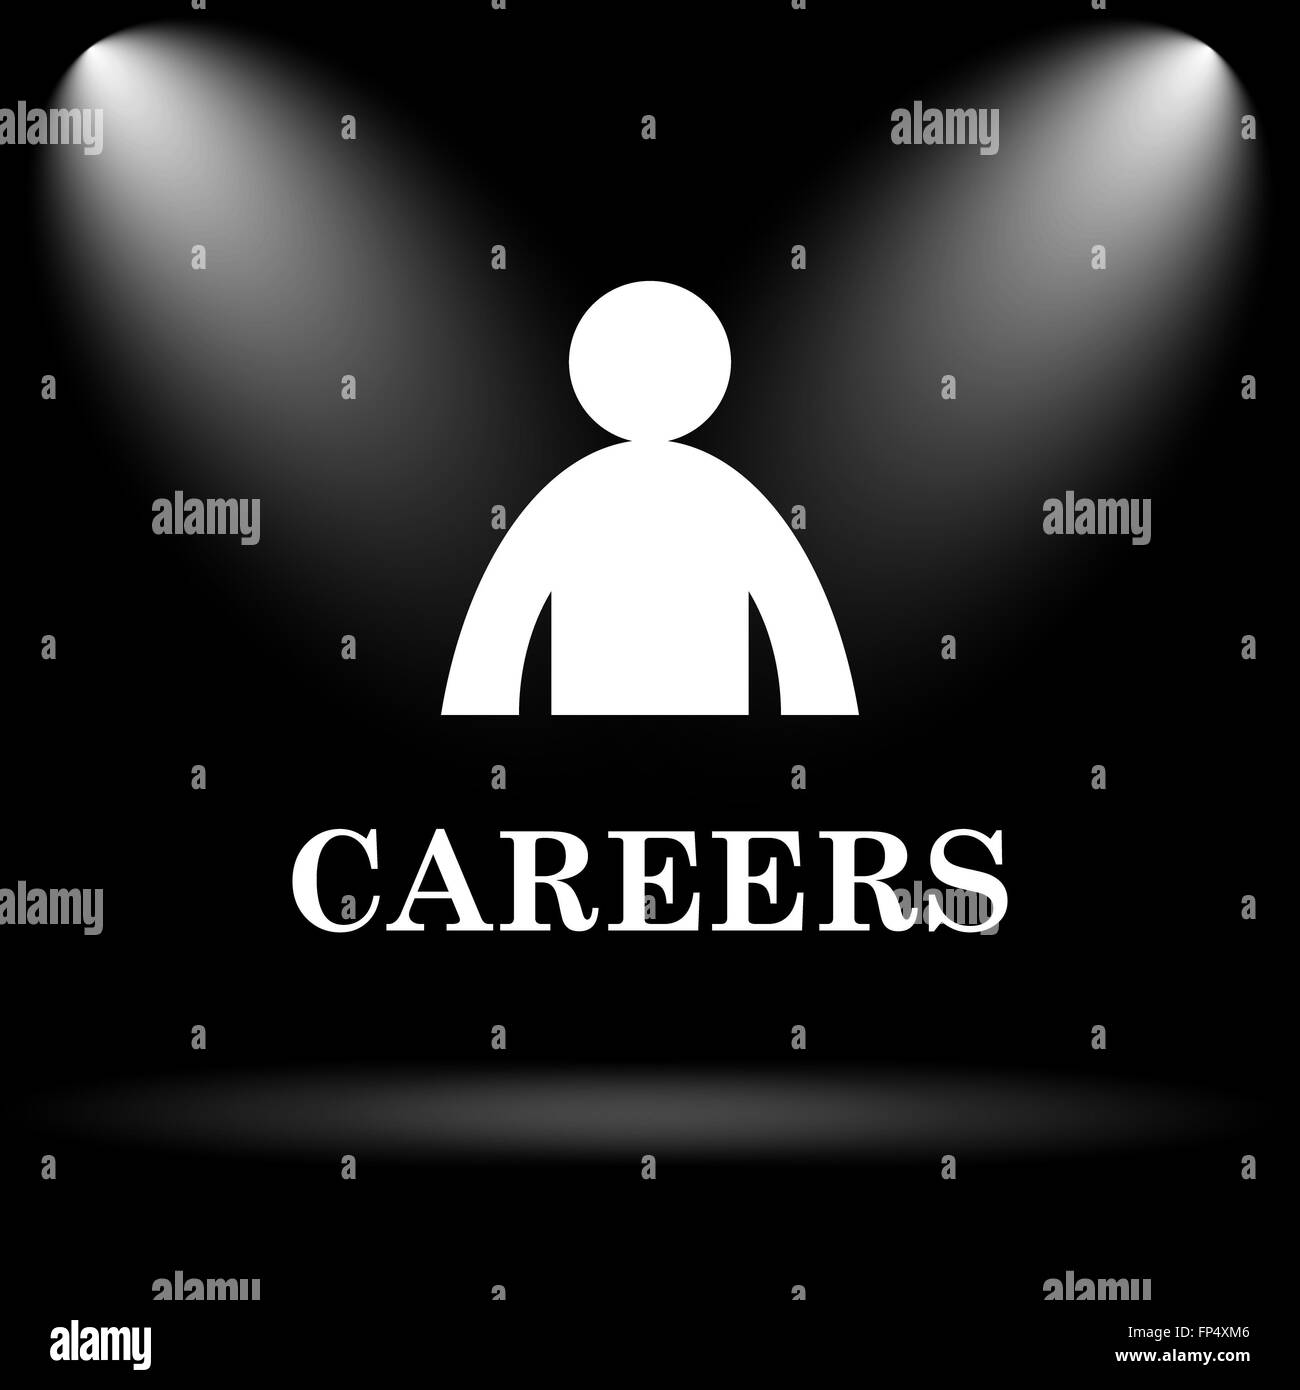 Careers icon. Internet button on black background. - Stock Image